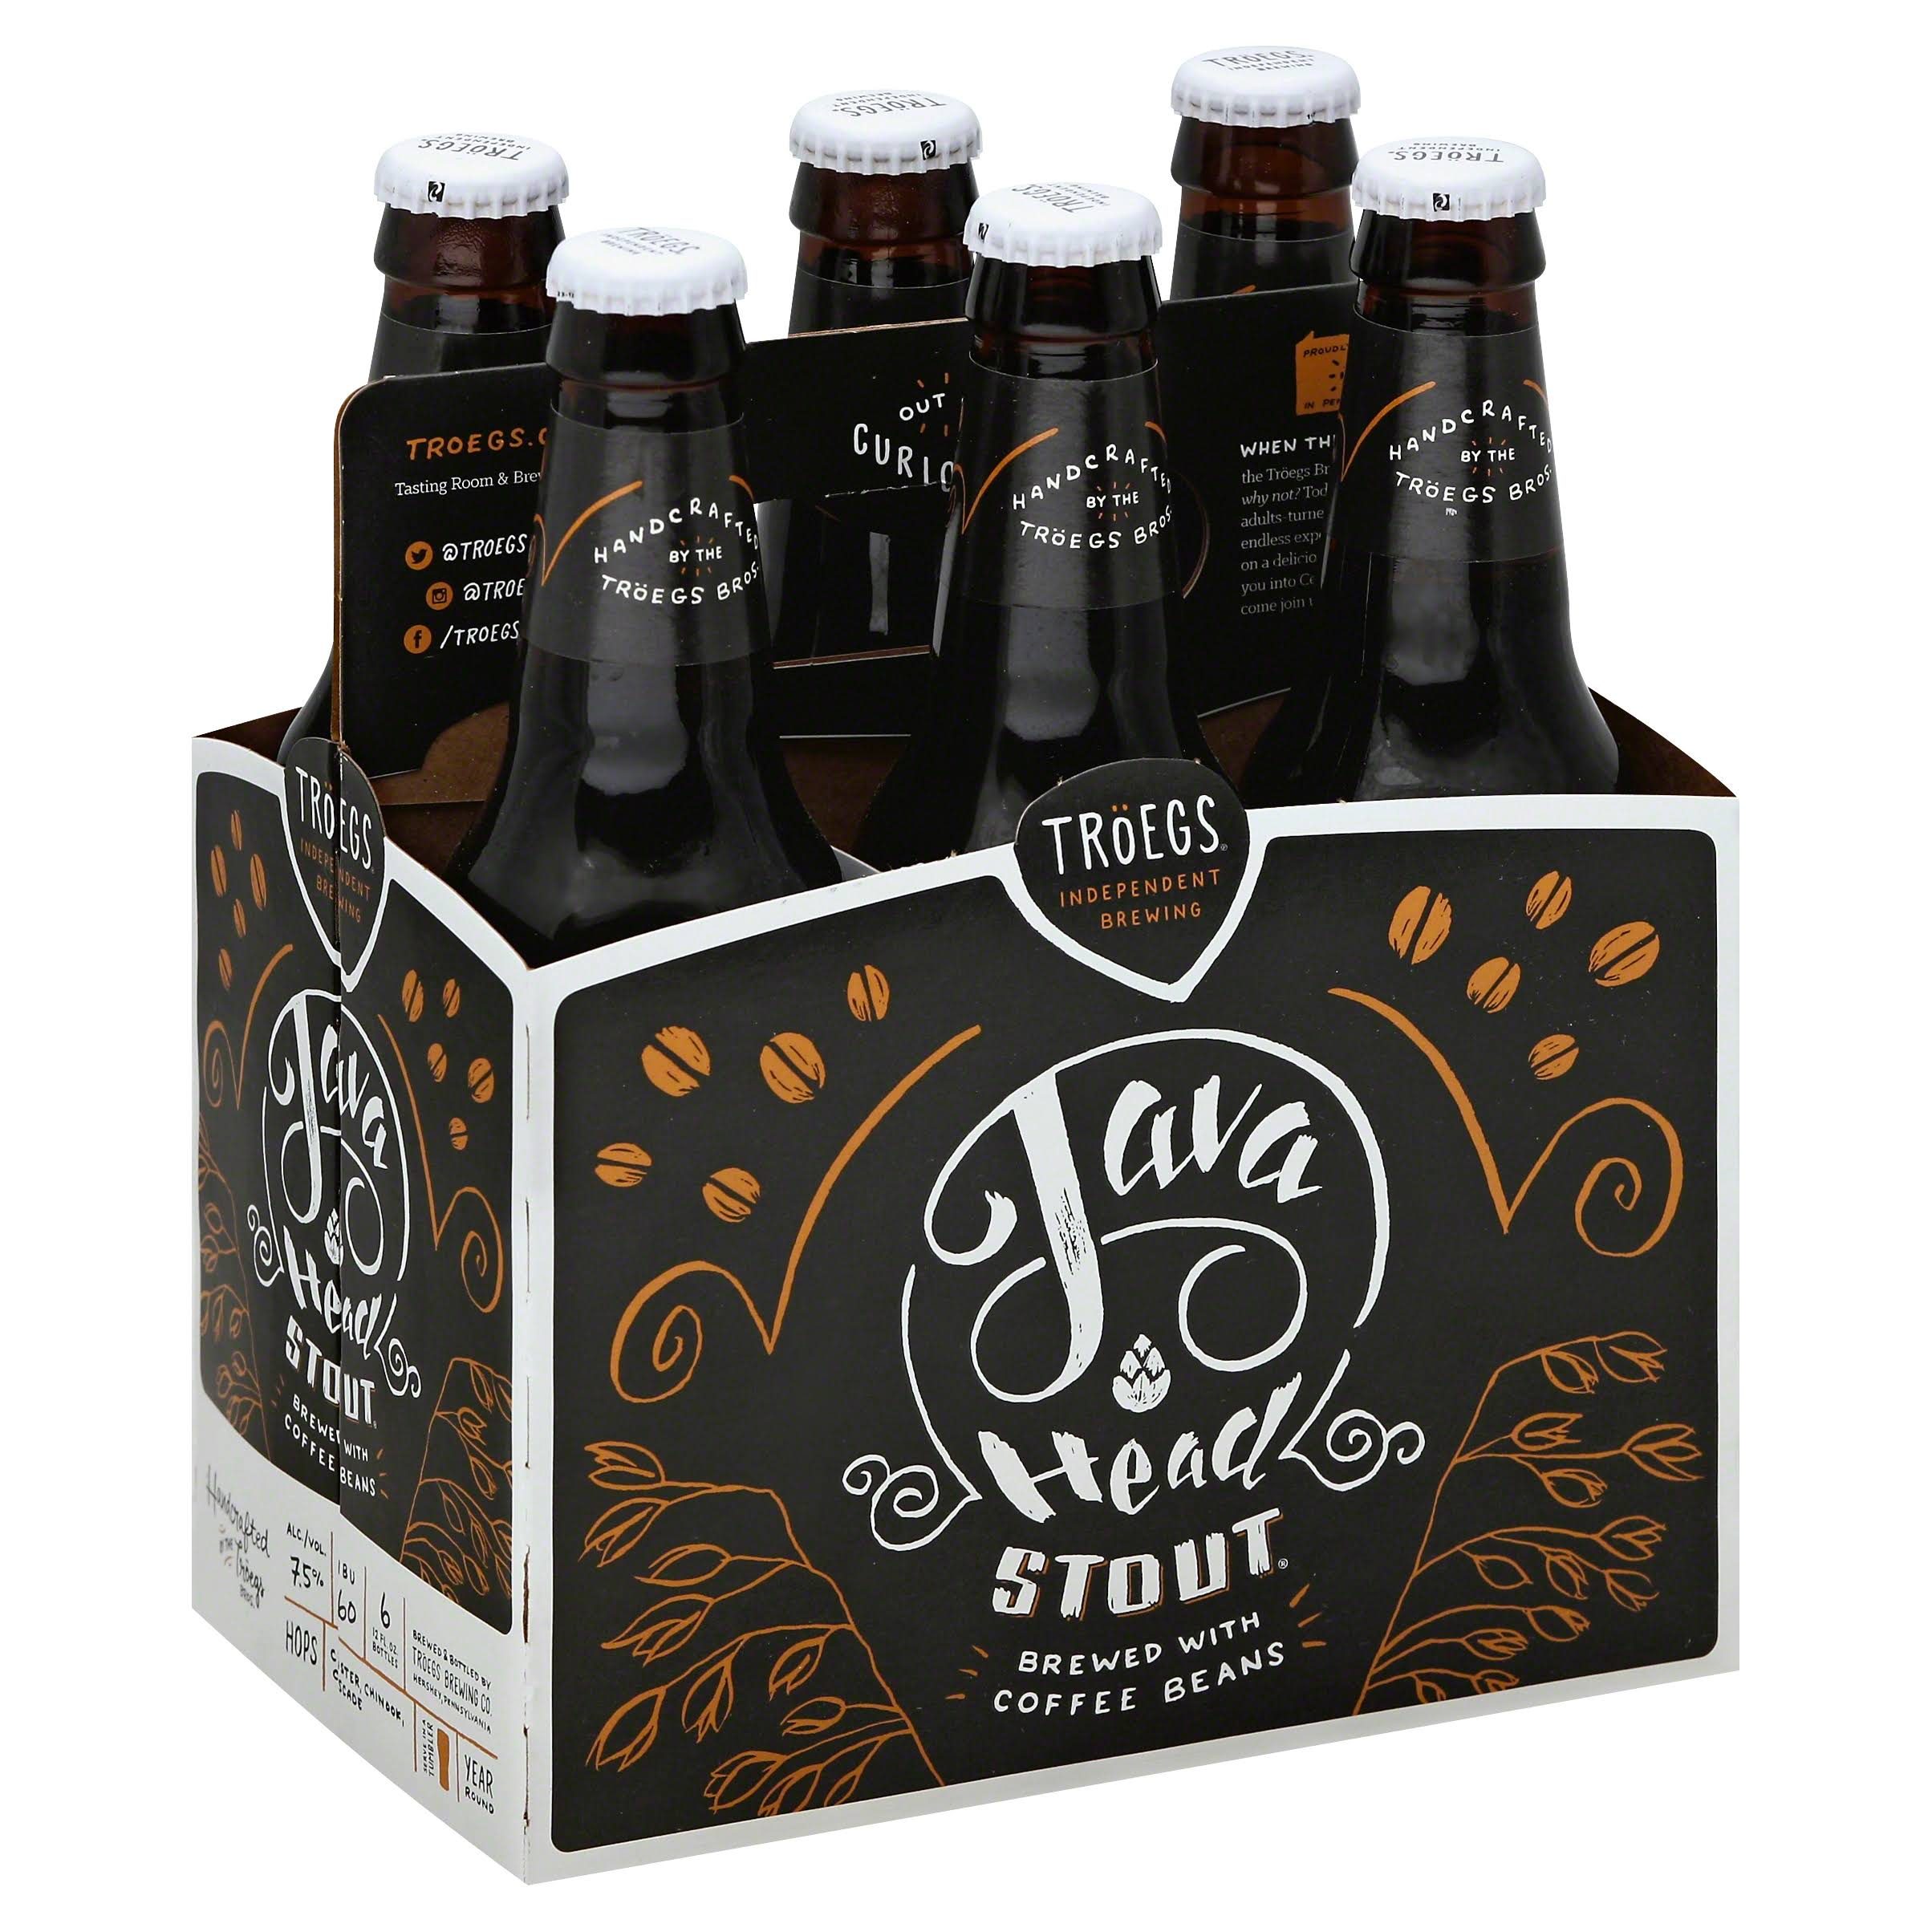 Troegs Beer, Stout, Java Head - 6 pack, 12 fl oz bottles